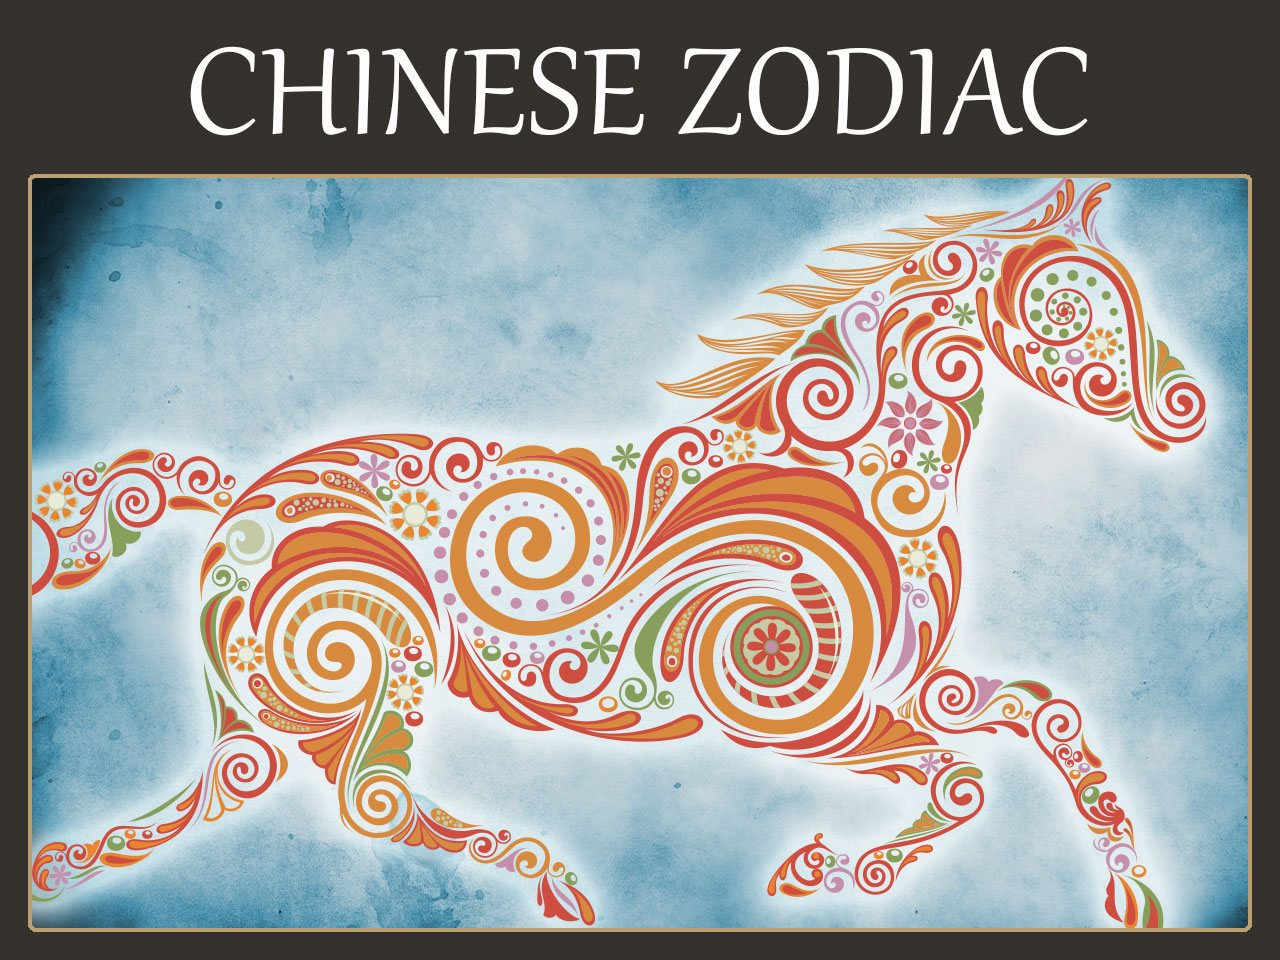 Chinese Zodiac Signs & Meanings | Personality, Traits